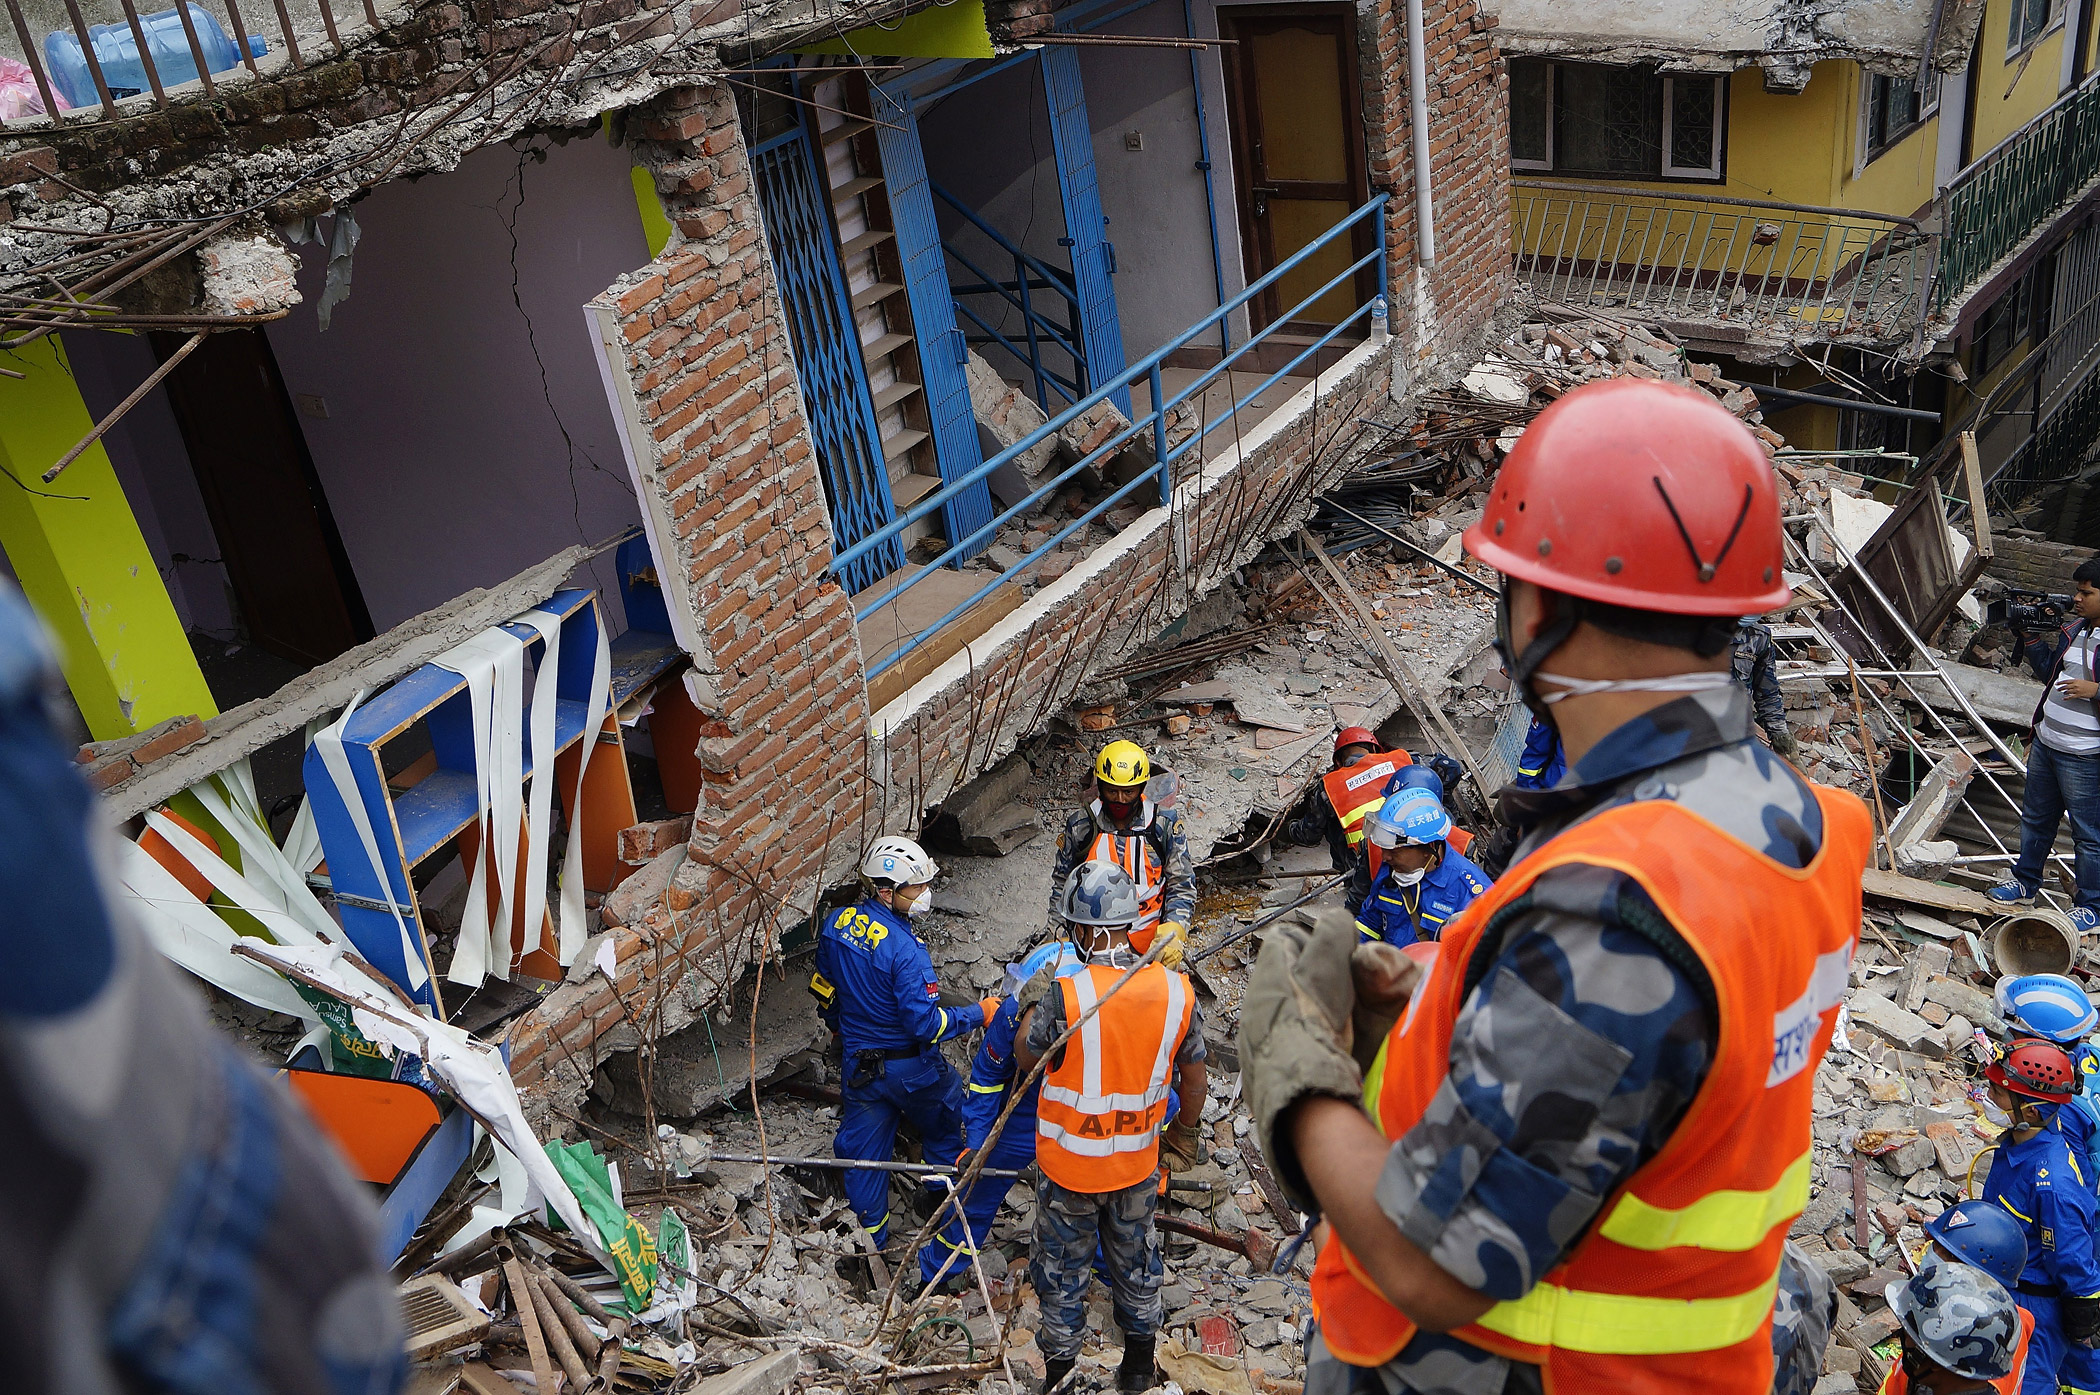 Nepalese and Chinese rescue teams look for earthquake victims in debris in Kathmandu, Nepal on April 28, 2015.